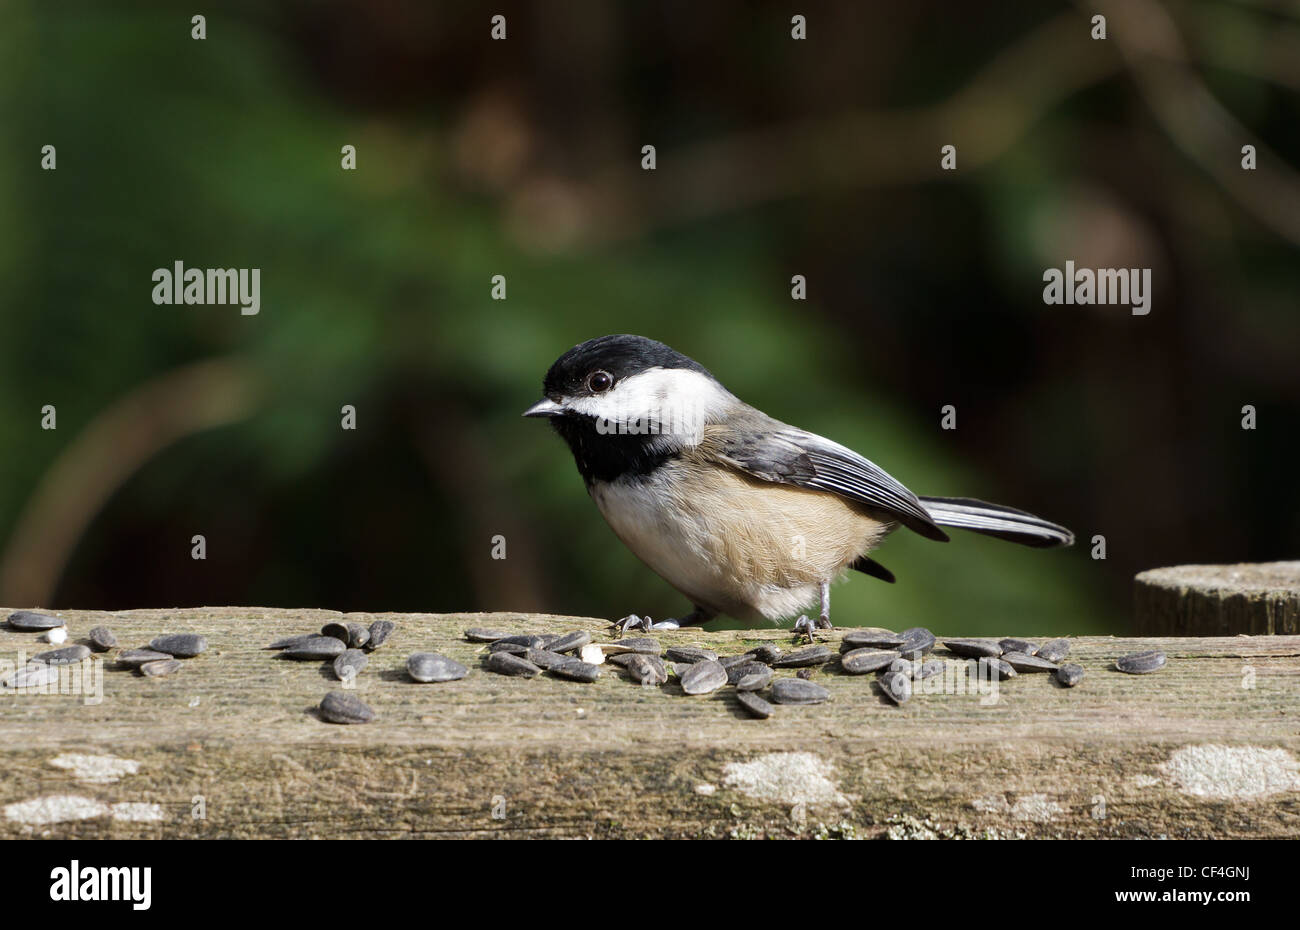 Black-capped Chickadee with seeds - Stock Image